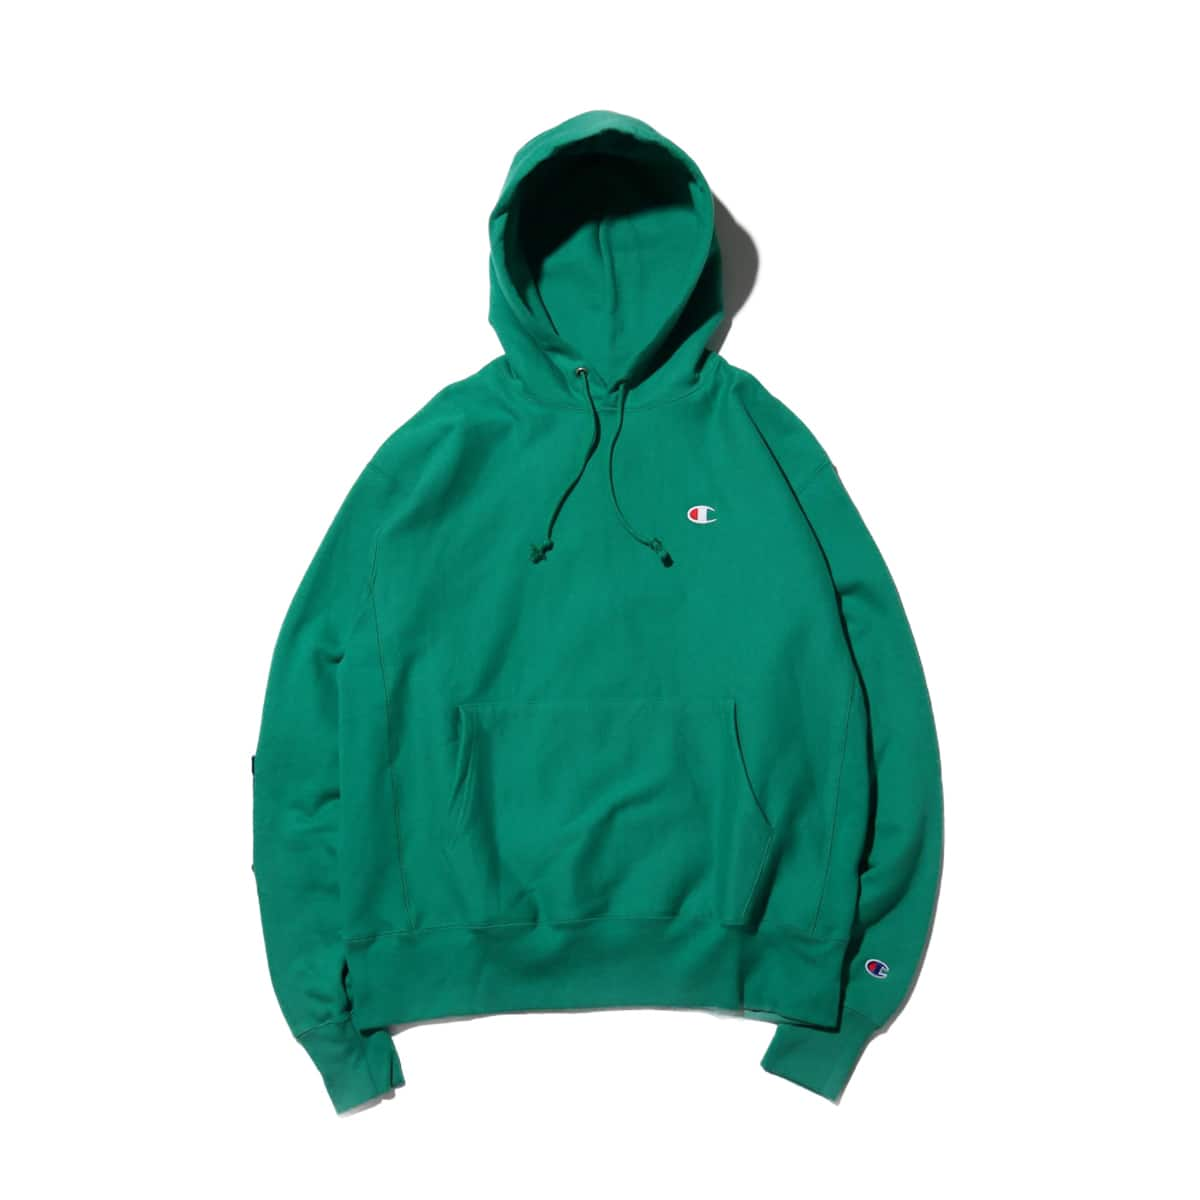 REMAKE HOODIE by 太田夢莉 GREEN 19HO-S_photo_large